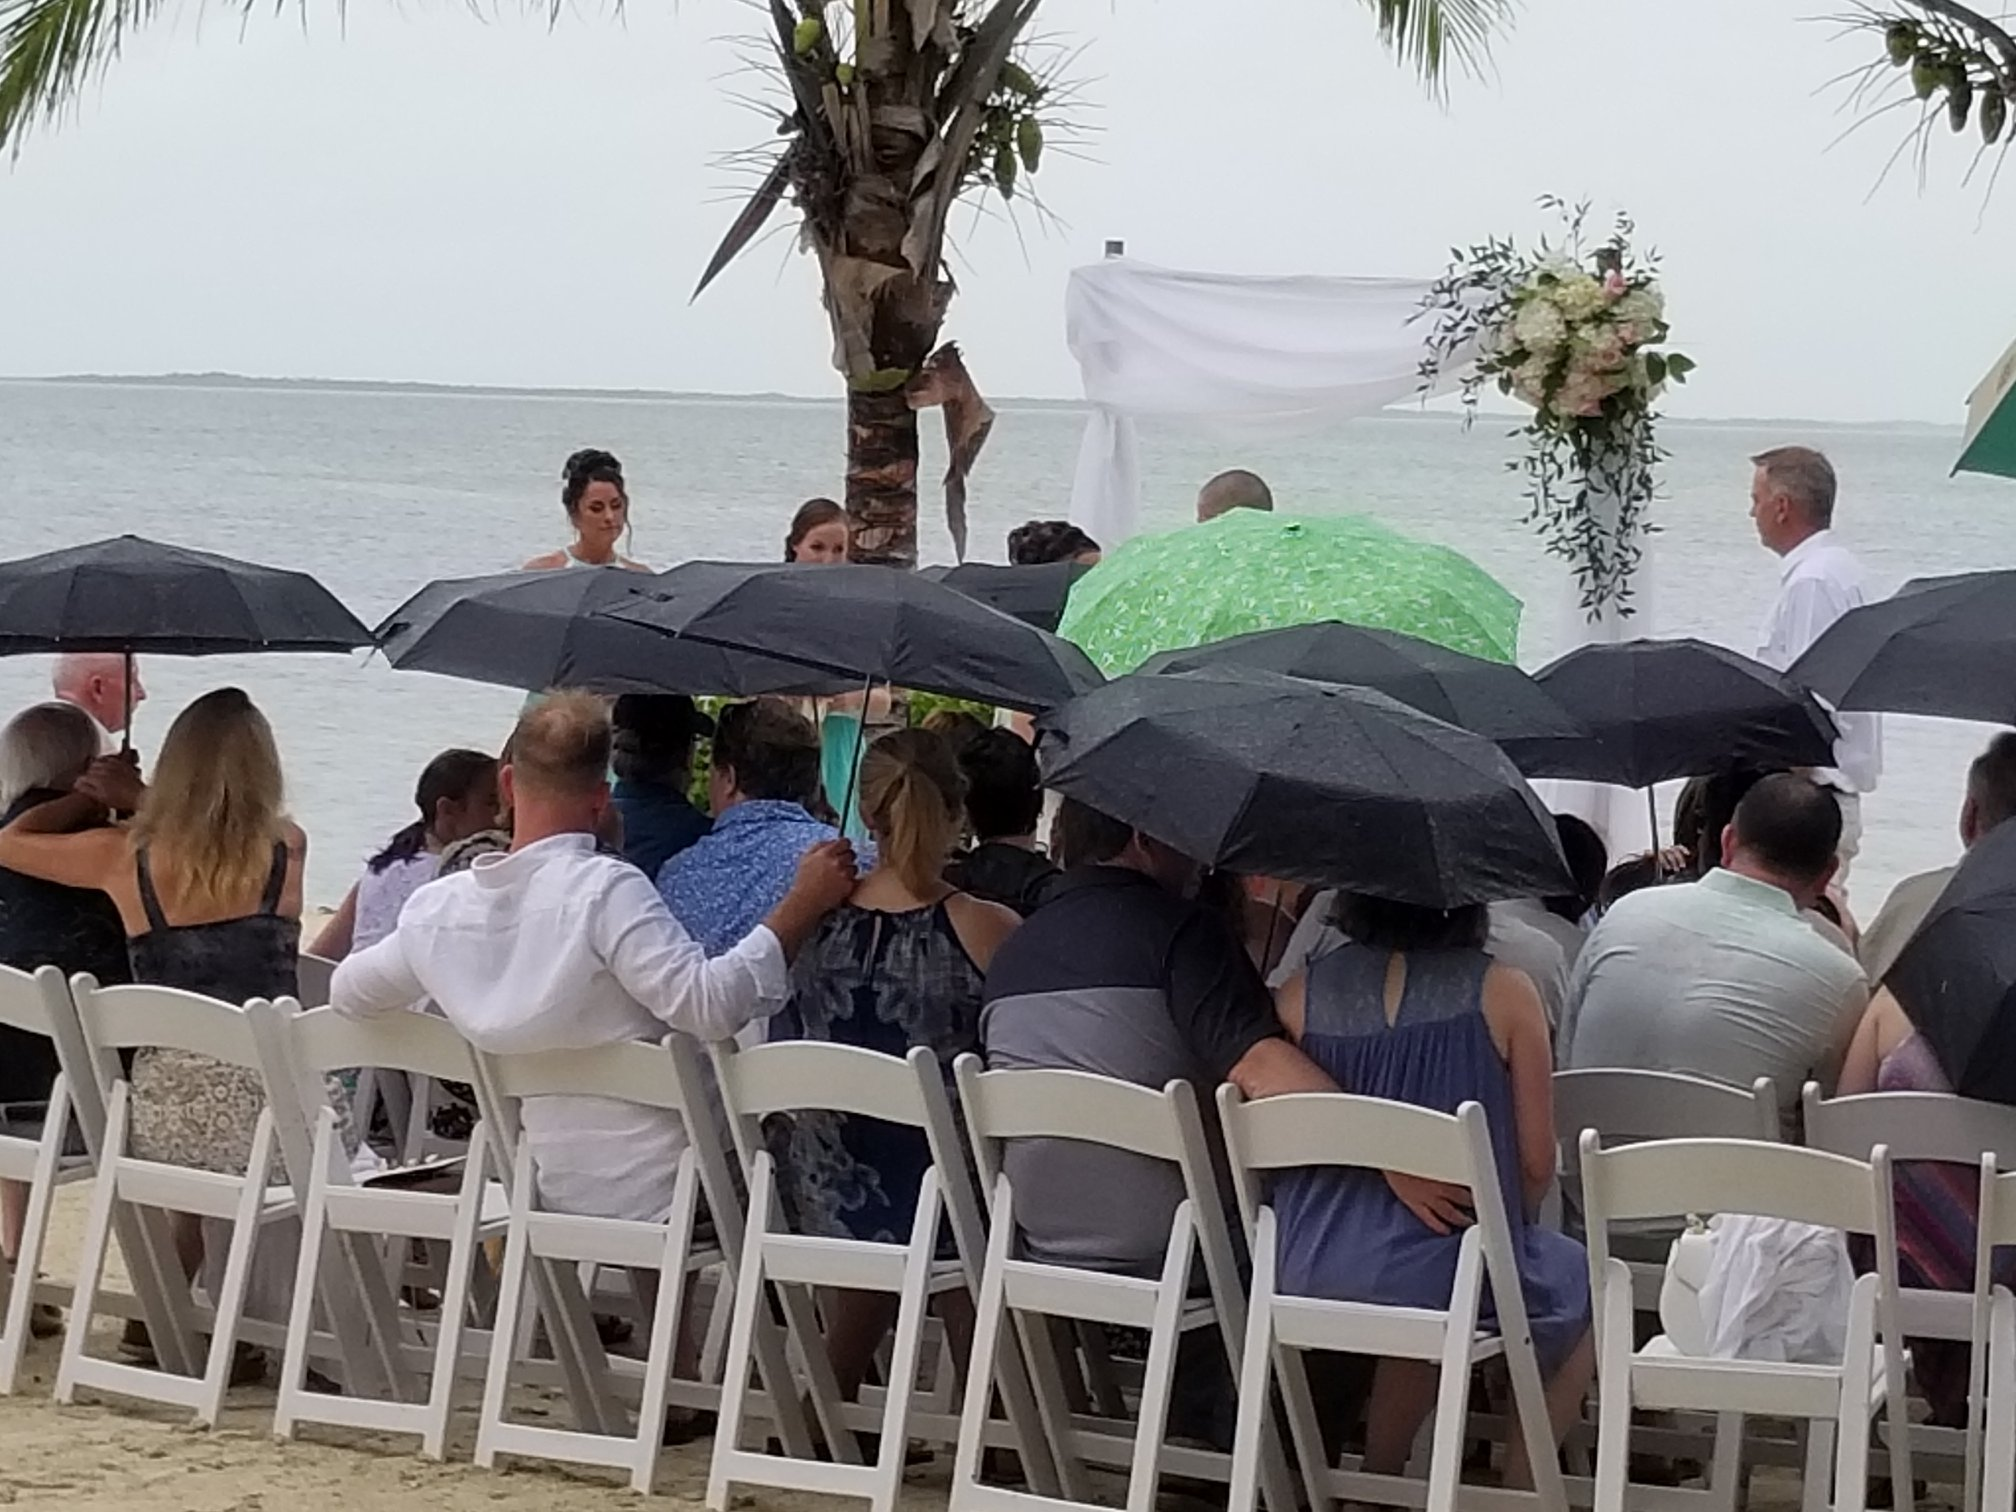 Any good team of vendors can get the job done when everything is going great, but the true mark of a great team is pulling off the perfect wedding under adverse conditions.  When we all arrived at yesterdays reception, it was pouring rain. Buckets of rain is more like it. Our bride and groom had planned for this beach side wedding in the beautiful Florida Keys with 70 of her close family and friends, only to be greeted by a Sub Tropical Storm off the west coast of Florida producing moderate winds and heavy rain over the entire Keys chain..  Of course the bride was somewhat anxious about this turn of events. After all, she had been planning this wedding for almost a year.  We all put on our happy faces and told her we would make this perfect for her and we didn't disappoint. With live radar apps on our phone, we kept track of the rains every moment. Between the planner, caterer, photographer, and of course yours truly, we plotted the storm and figured out when would be the best time to do things based on breaks in the weather. The entire day was moved up by one hour which is easy when you're having a destination wedding and you know where everyone is staying to get word to them. Once we had all the guests there, we knew we had a window of 30 minutes during a break in the weather. The planners and venue staff jumped into action, had the chairs wiped dry, lined up the wedding party, and got that ceremony started. It sprinkled a little bit but the ceremony was perfect.  During cocktail hour we decided we had enough time to do the grand introductions outside along with our spotlight dances. The bride was beaming with happiness.  Once the dances were complete, we invited all of the guests into the dinner tent. It started to rain again on and off during dinner and dancing. The catering staff had to go back and forth between the main tent and their catering facilities and most of them were drenched but not one had any complaints. They had one mission, feed the guests, keep 